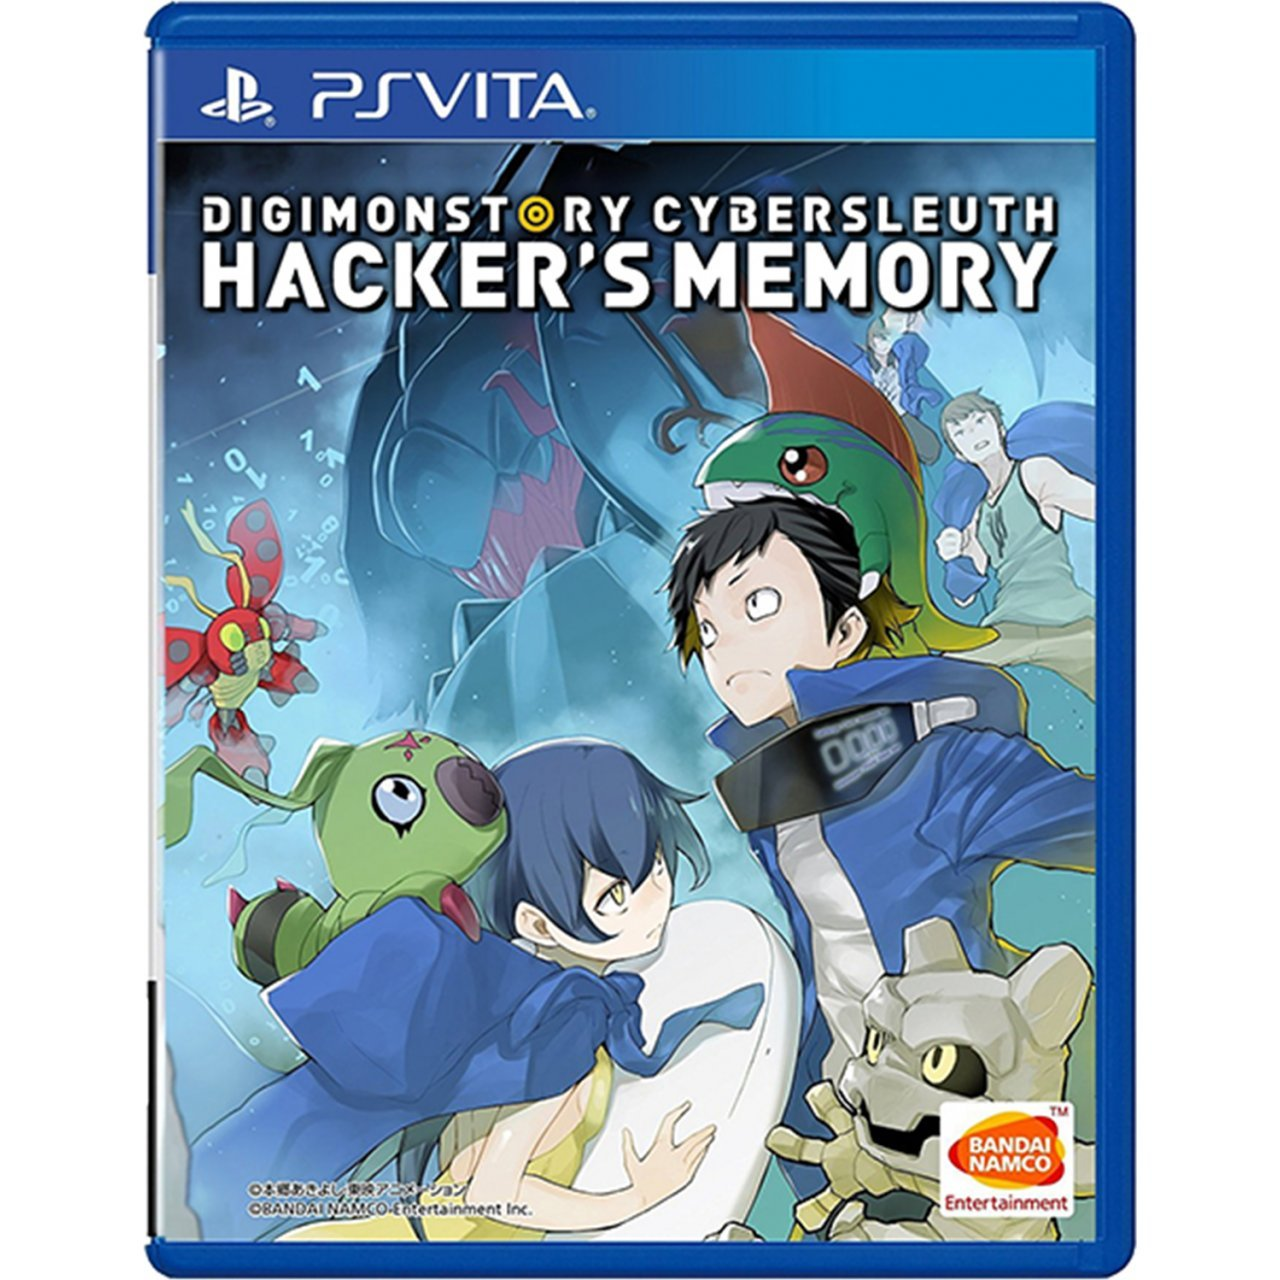 download free ps vita games without pc